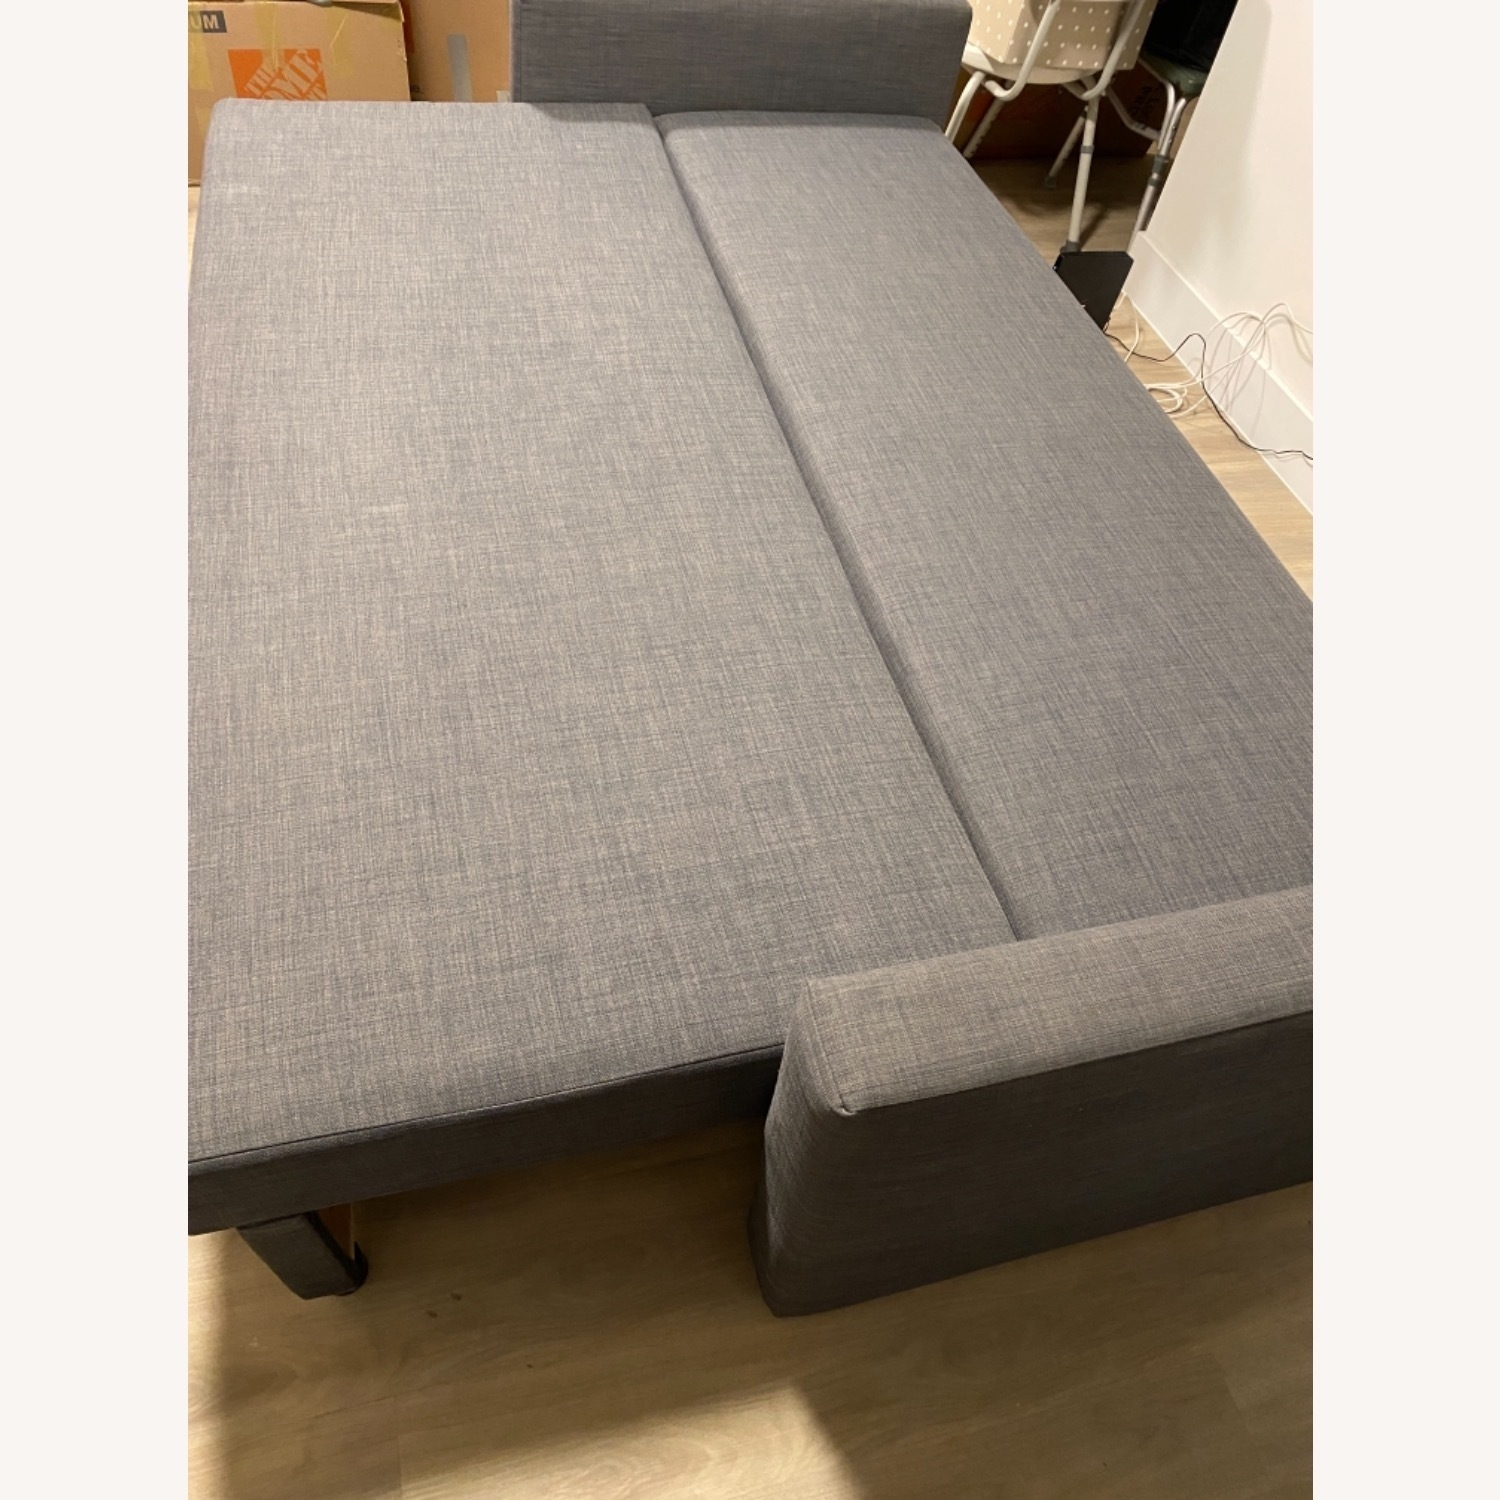 IKEA Dark Grey Sofa Bed - image-8